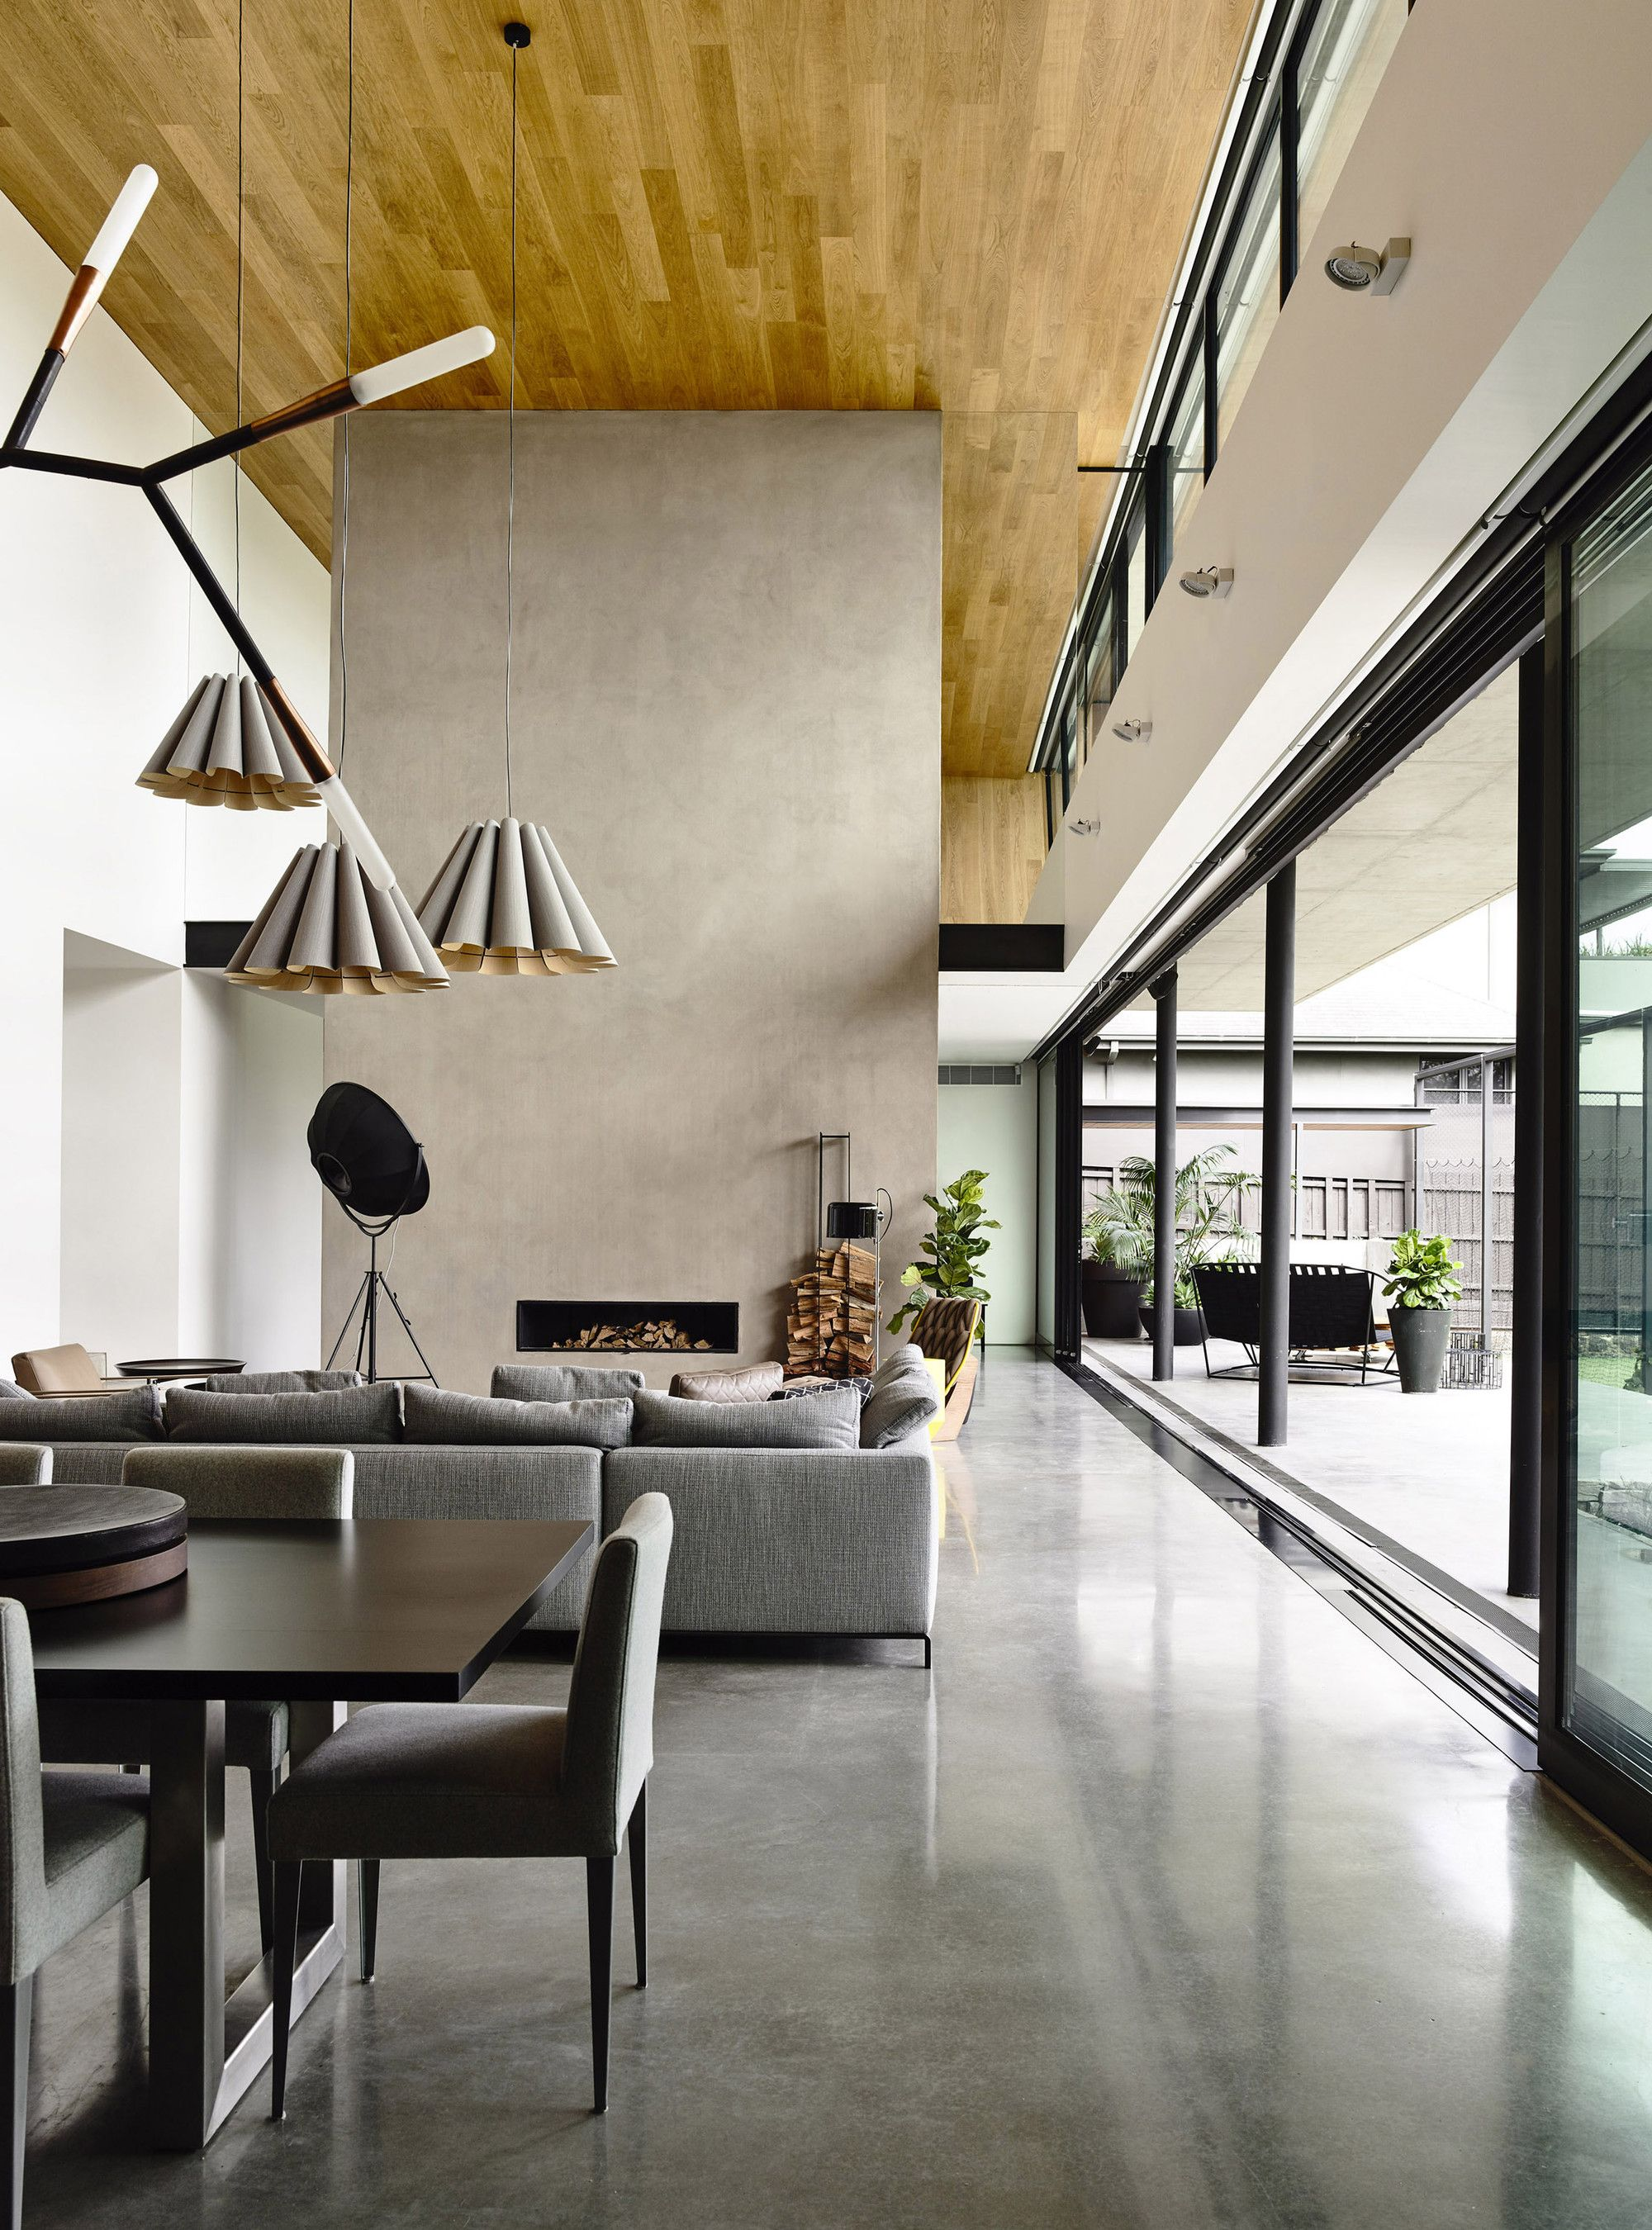 What To Considered In Minimalist Designers And House Int.? | Villa Design,  Minimalist And Interiors